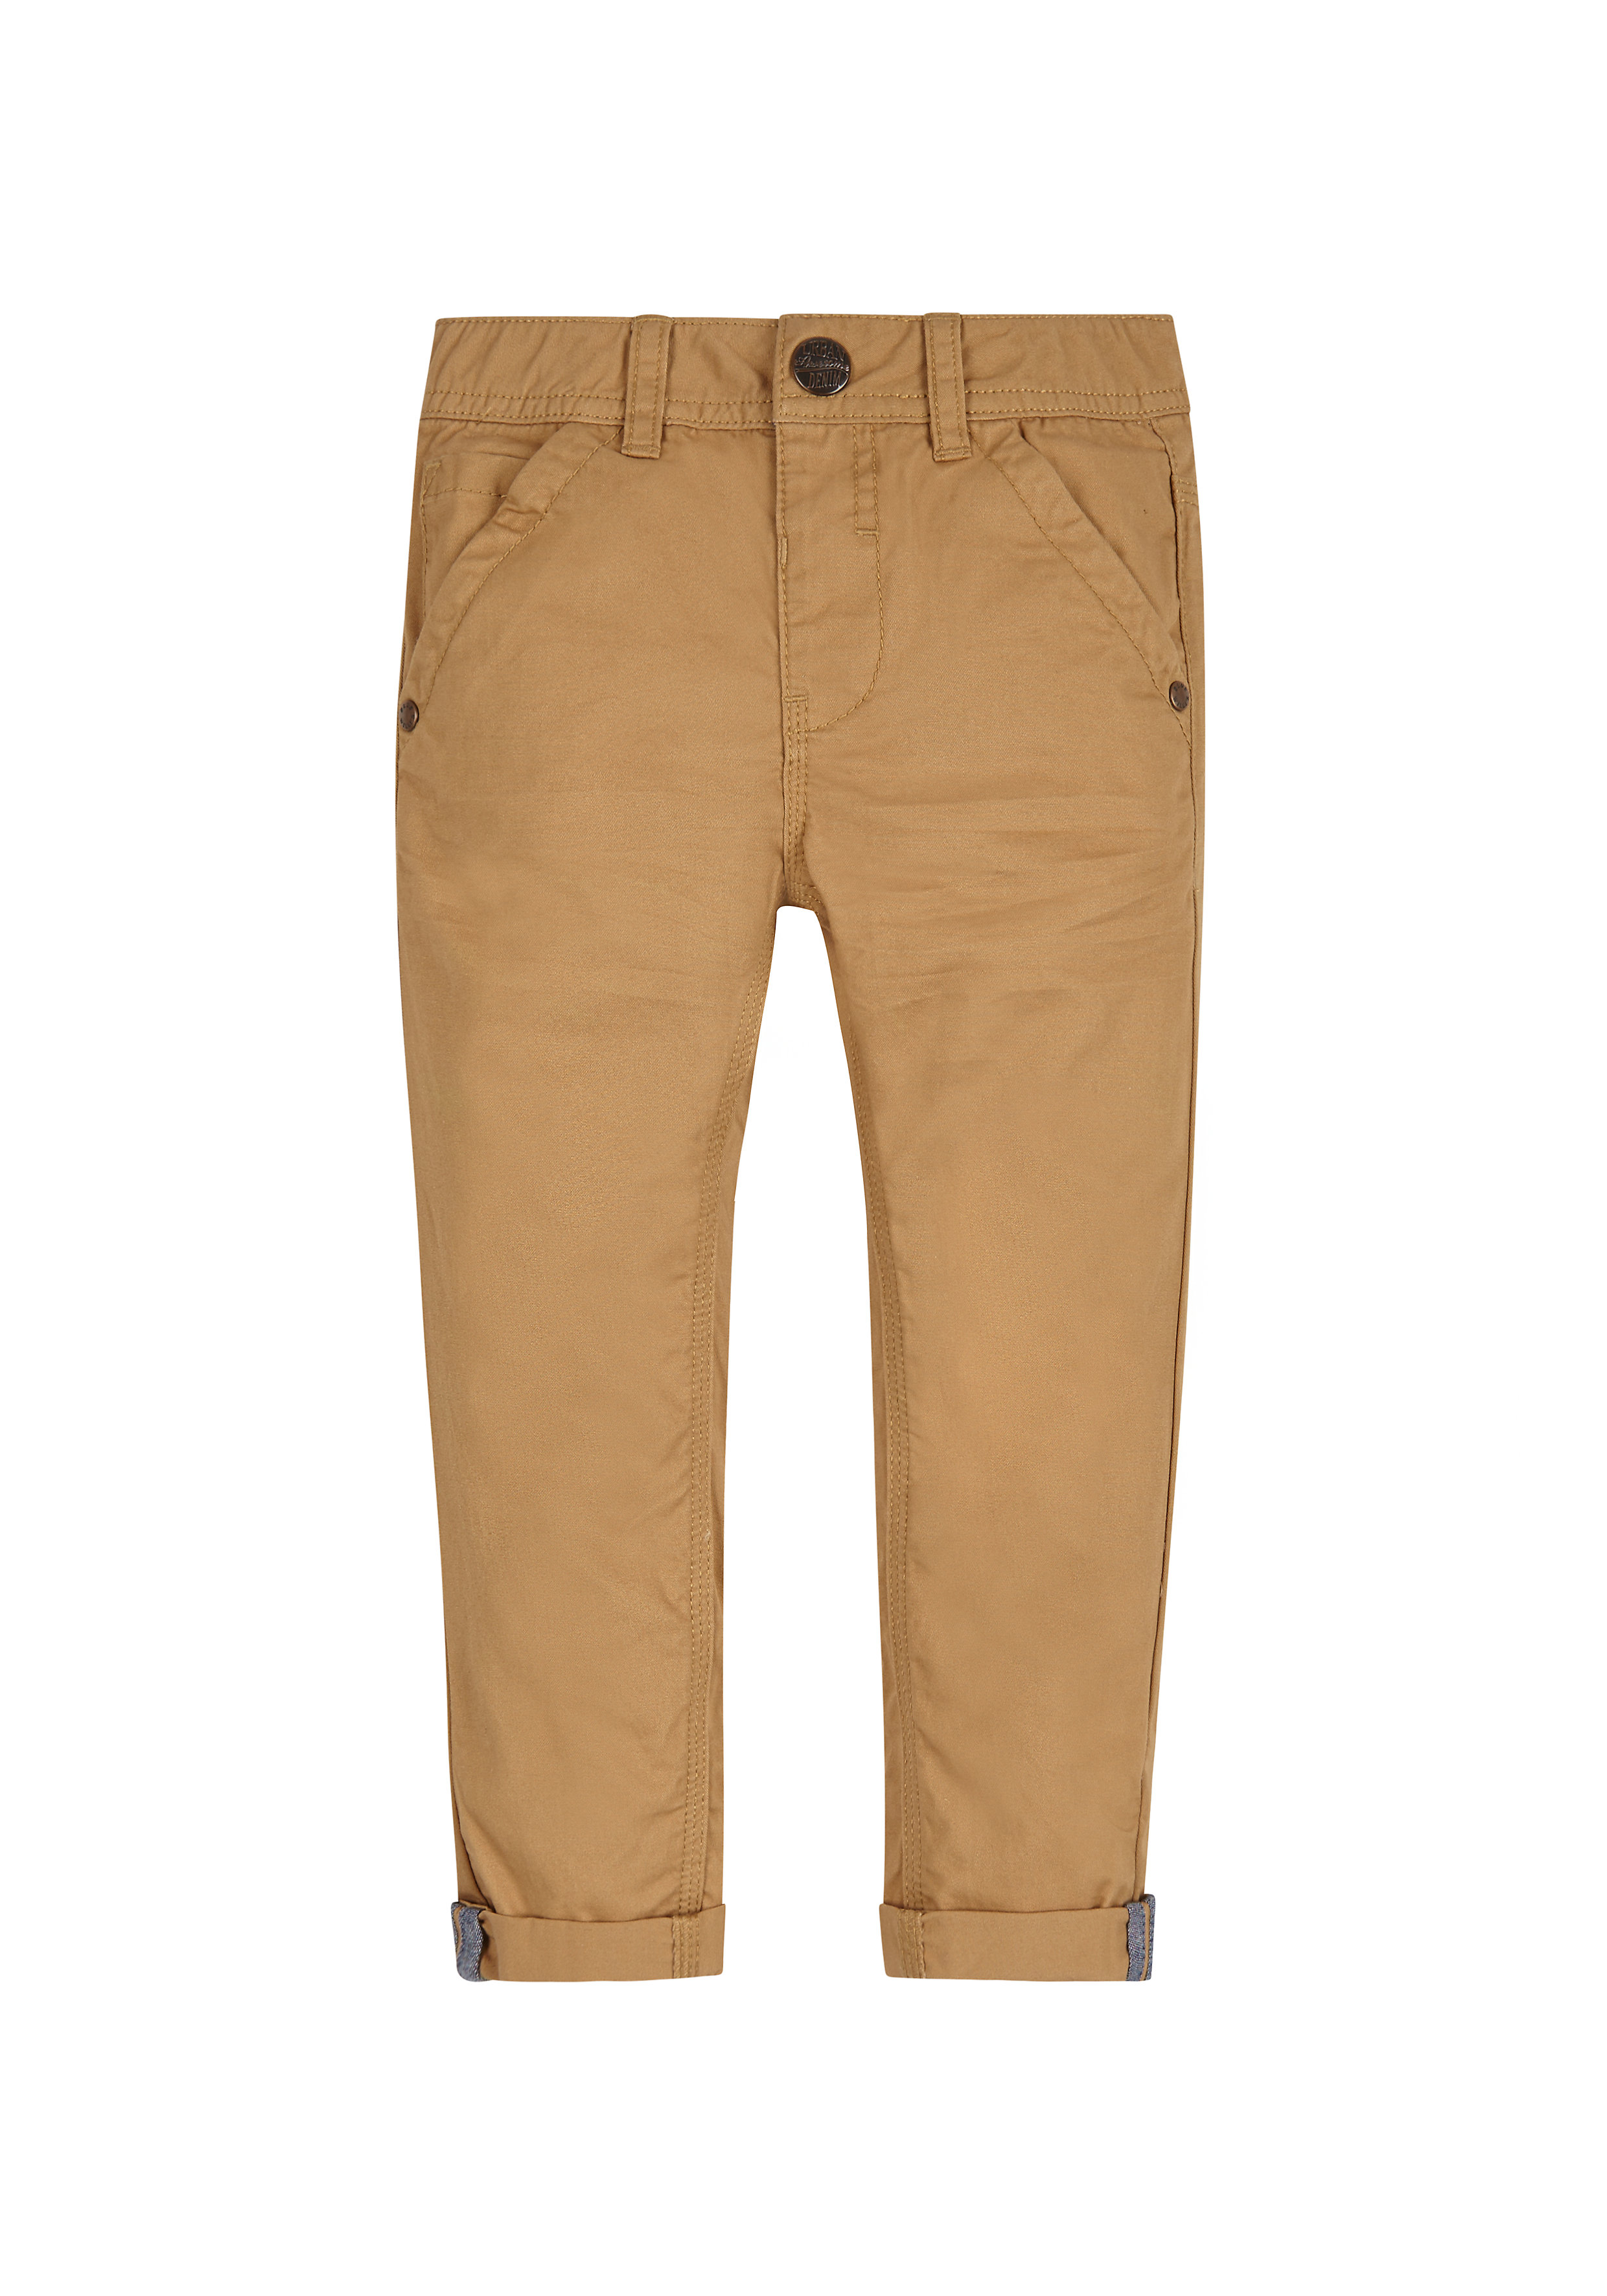 Mothercare | Boys Twill Chino Trousers - Brown